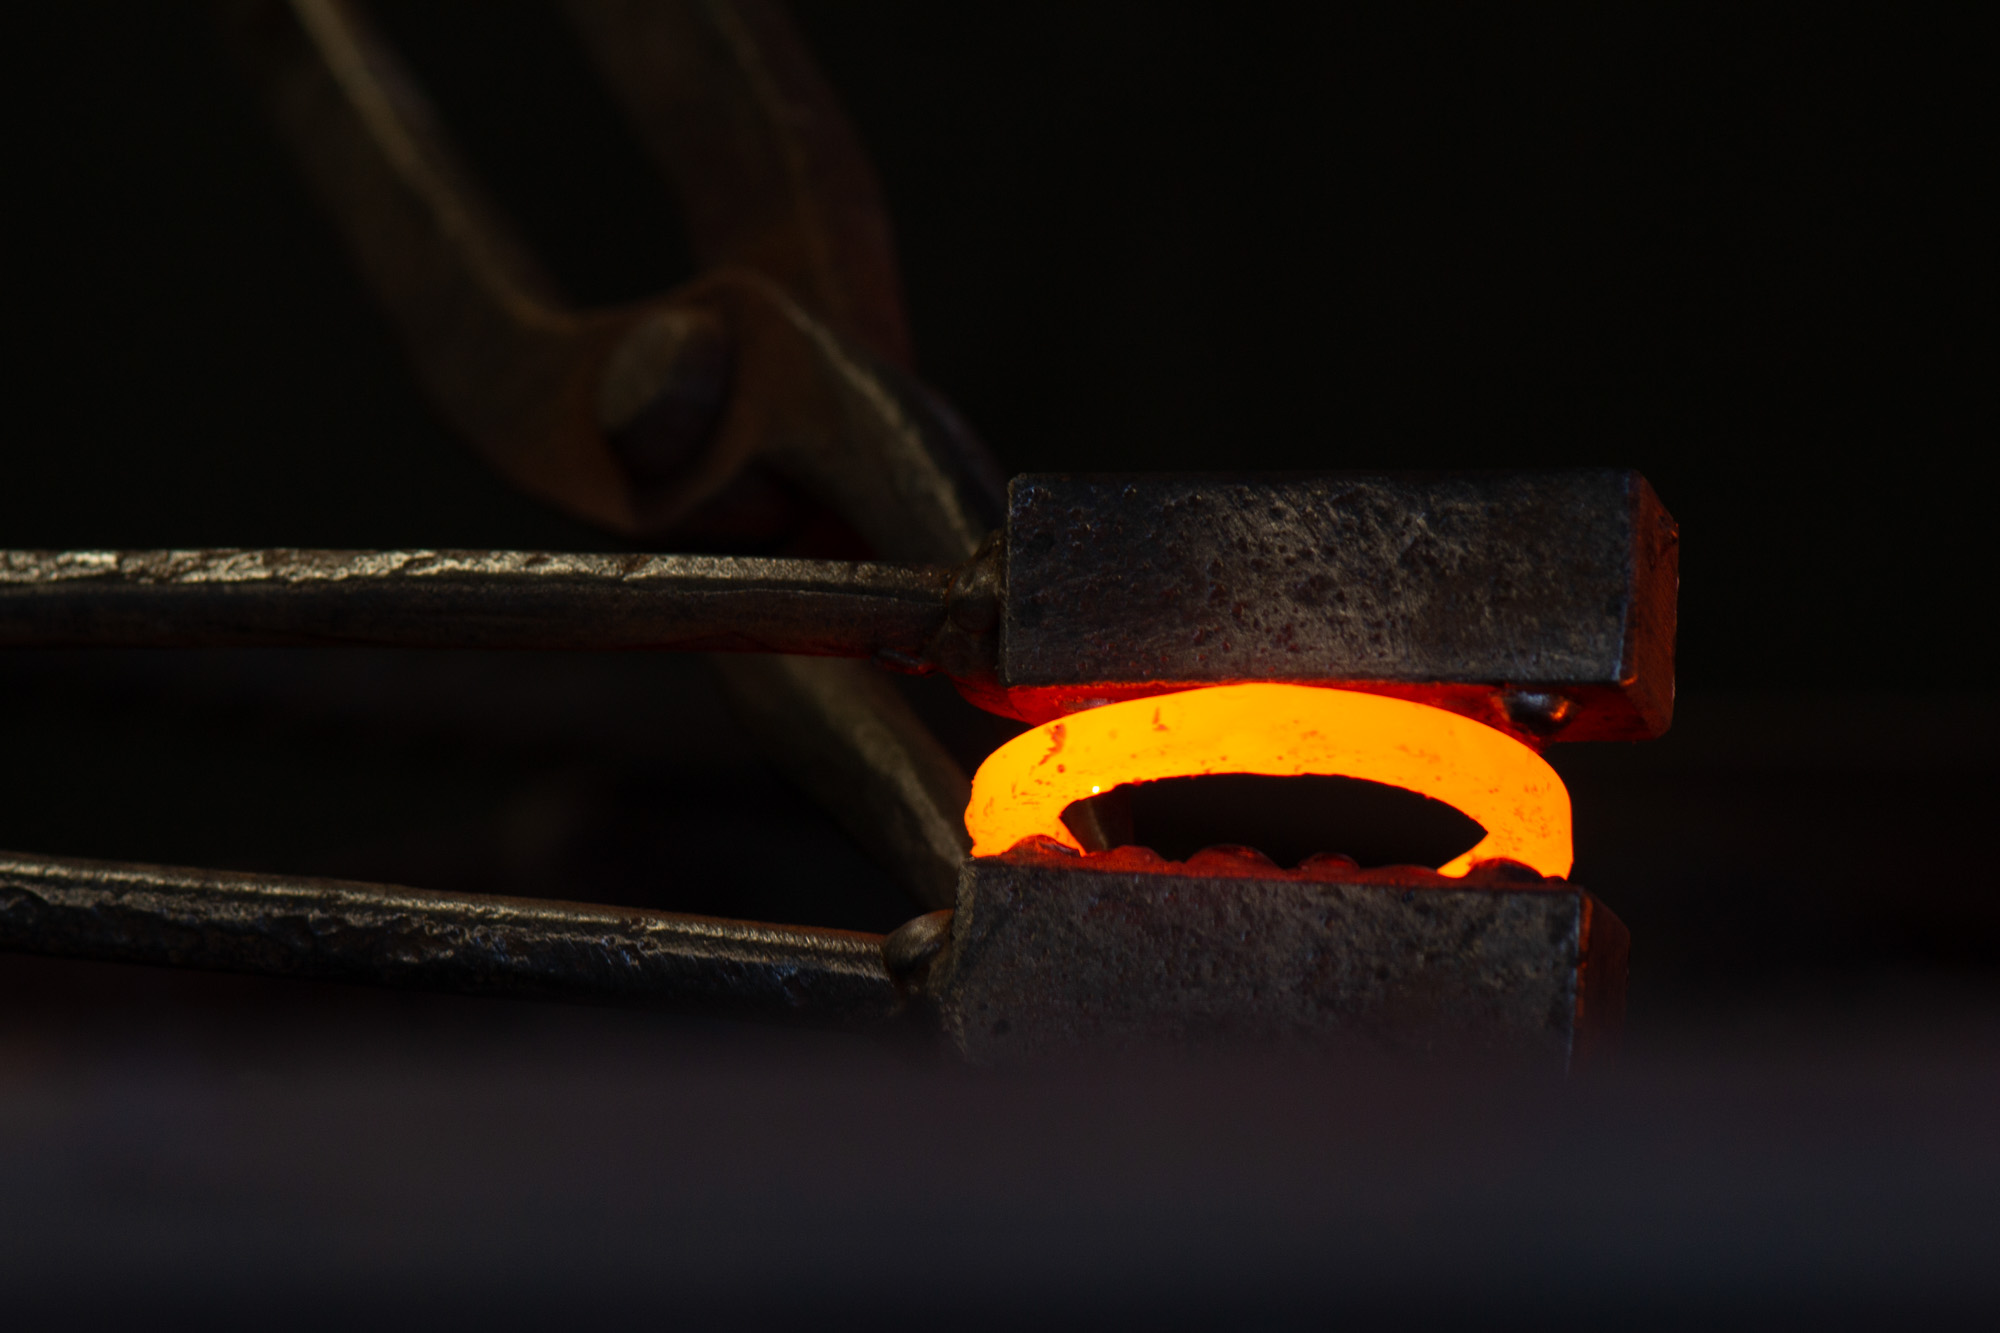 Placed into the forge until they are red hot. At approximately 1200 degrees, they are removed from the heat of the fire and struck using bespoke texture tools.